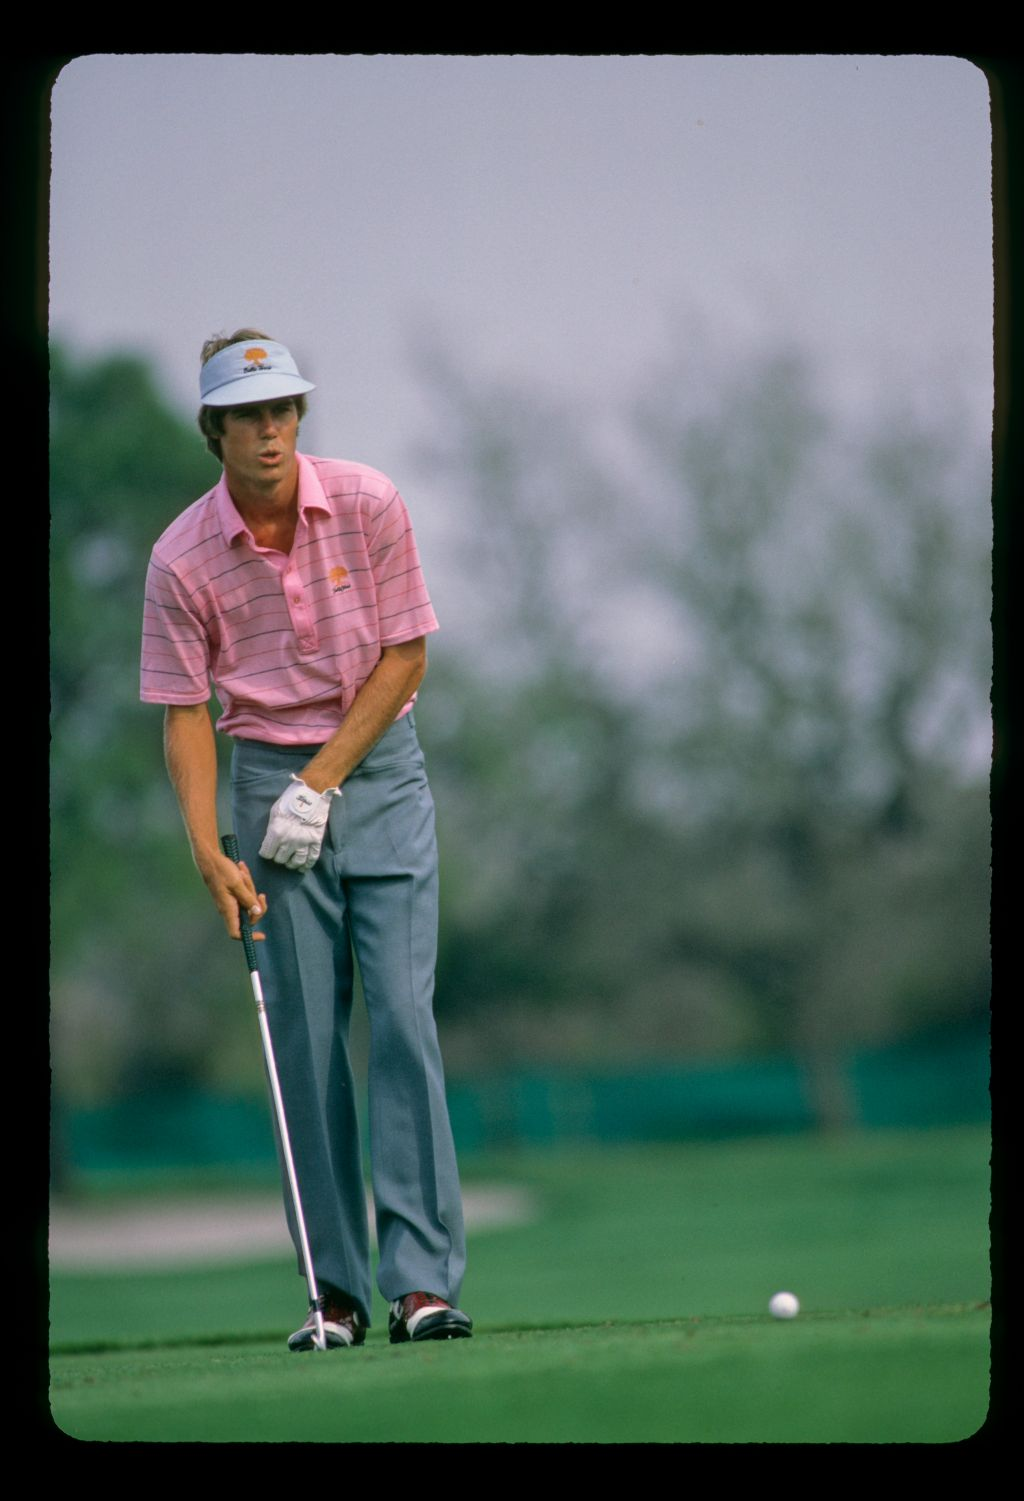 Paul Azinger considers his putt at the Bay Hill Classic Championship